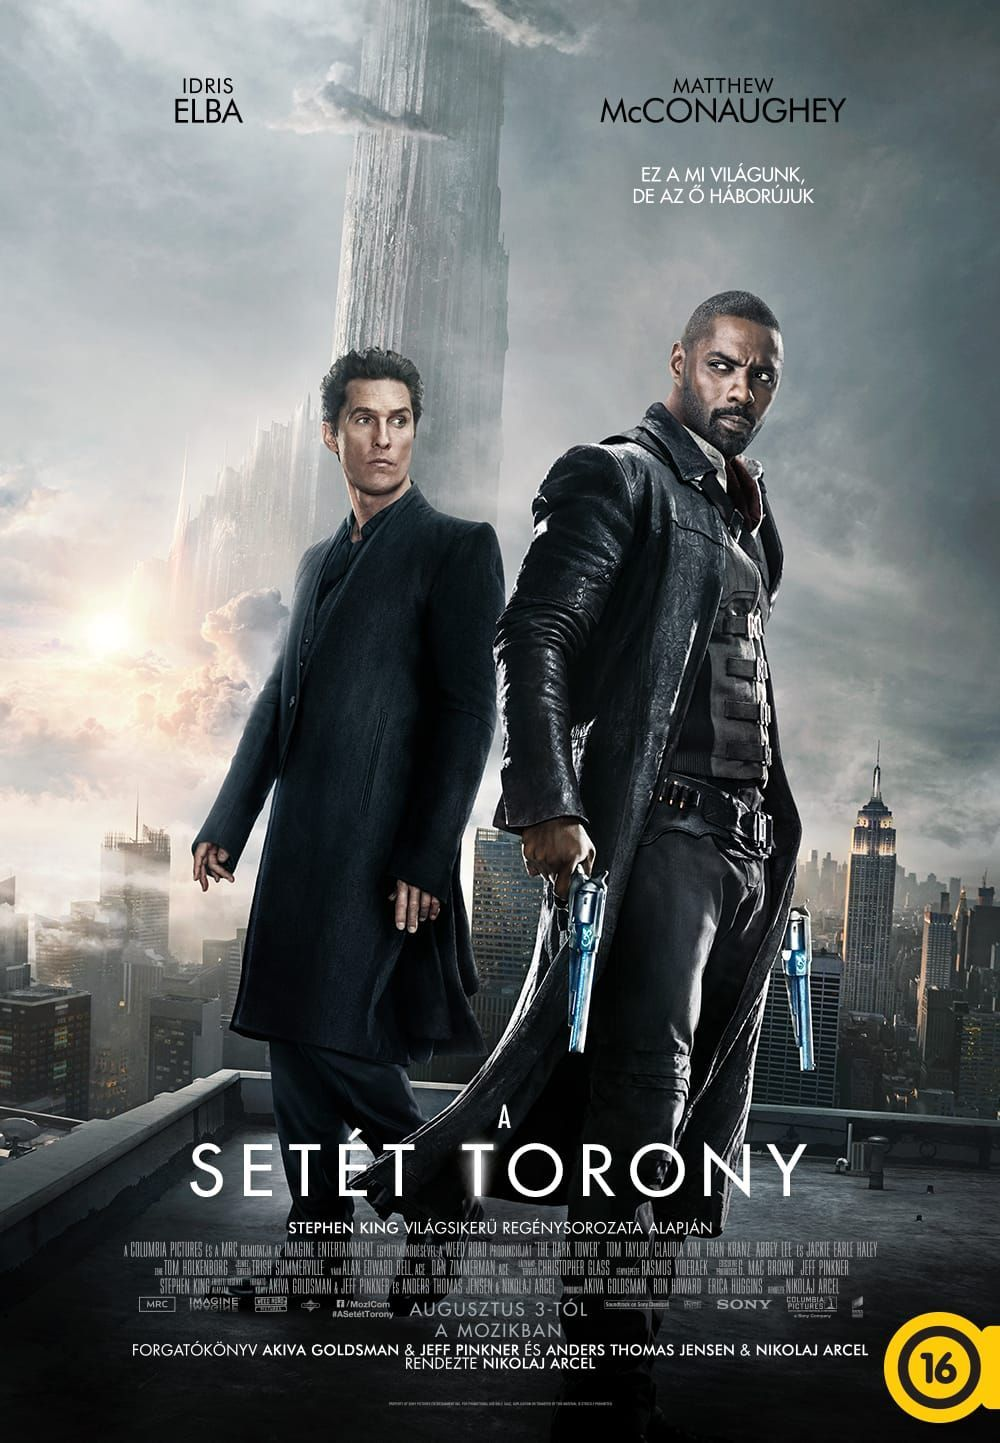 A setét torony (The Dark Tower)